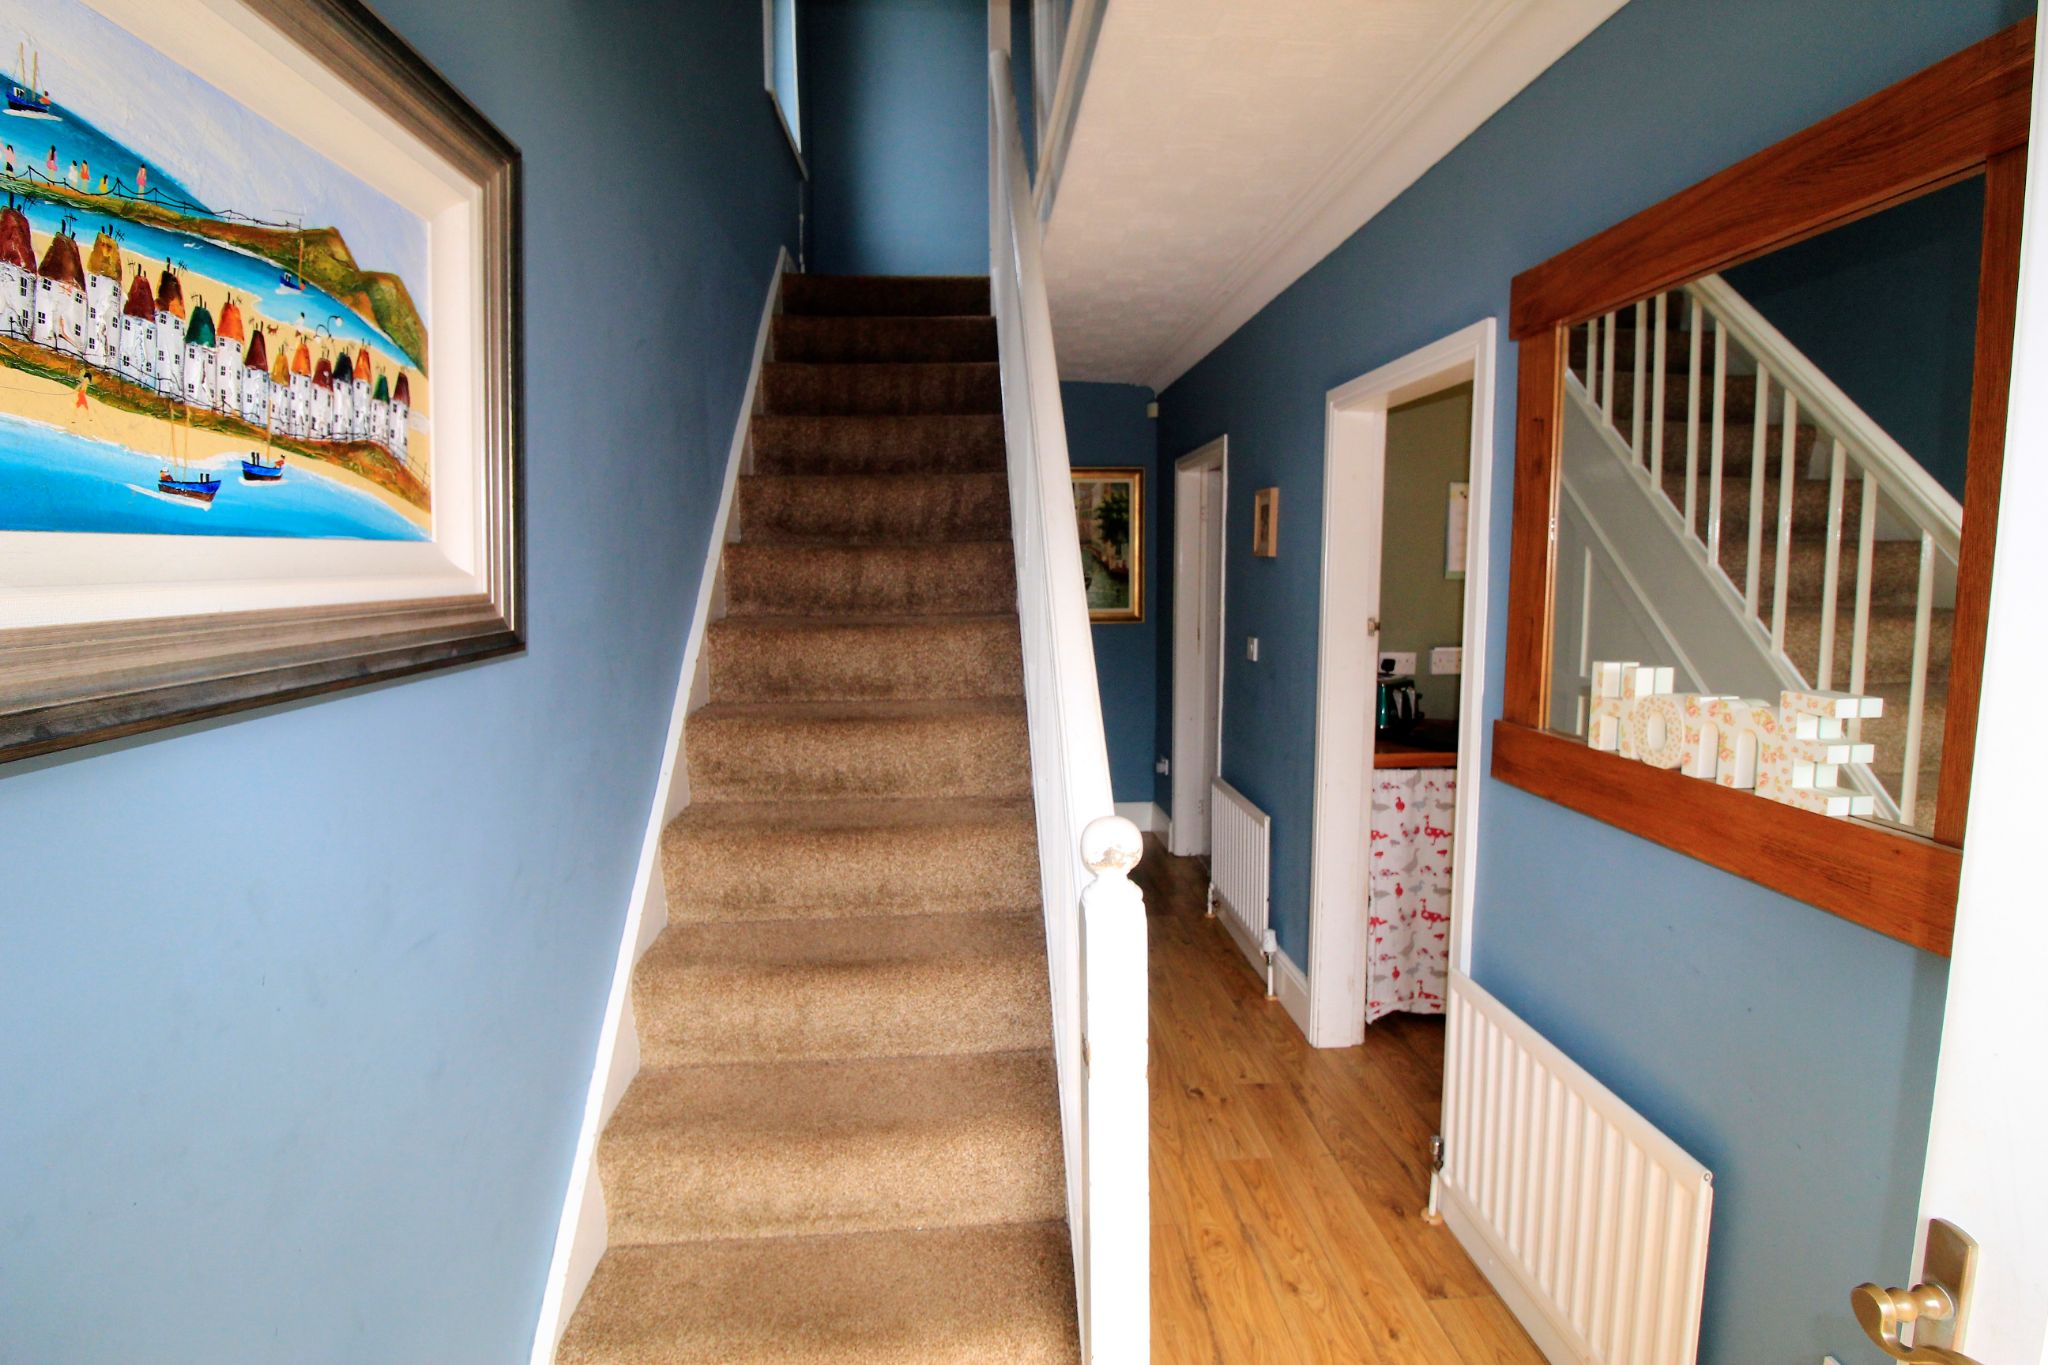 3 bedroom town house SSTC in Halifax - Photograph 9